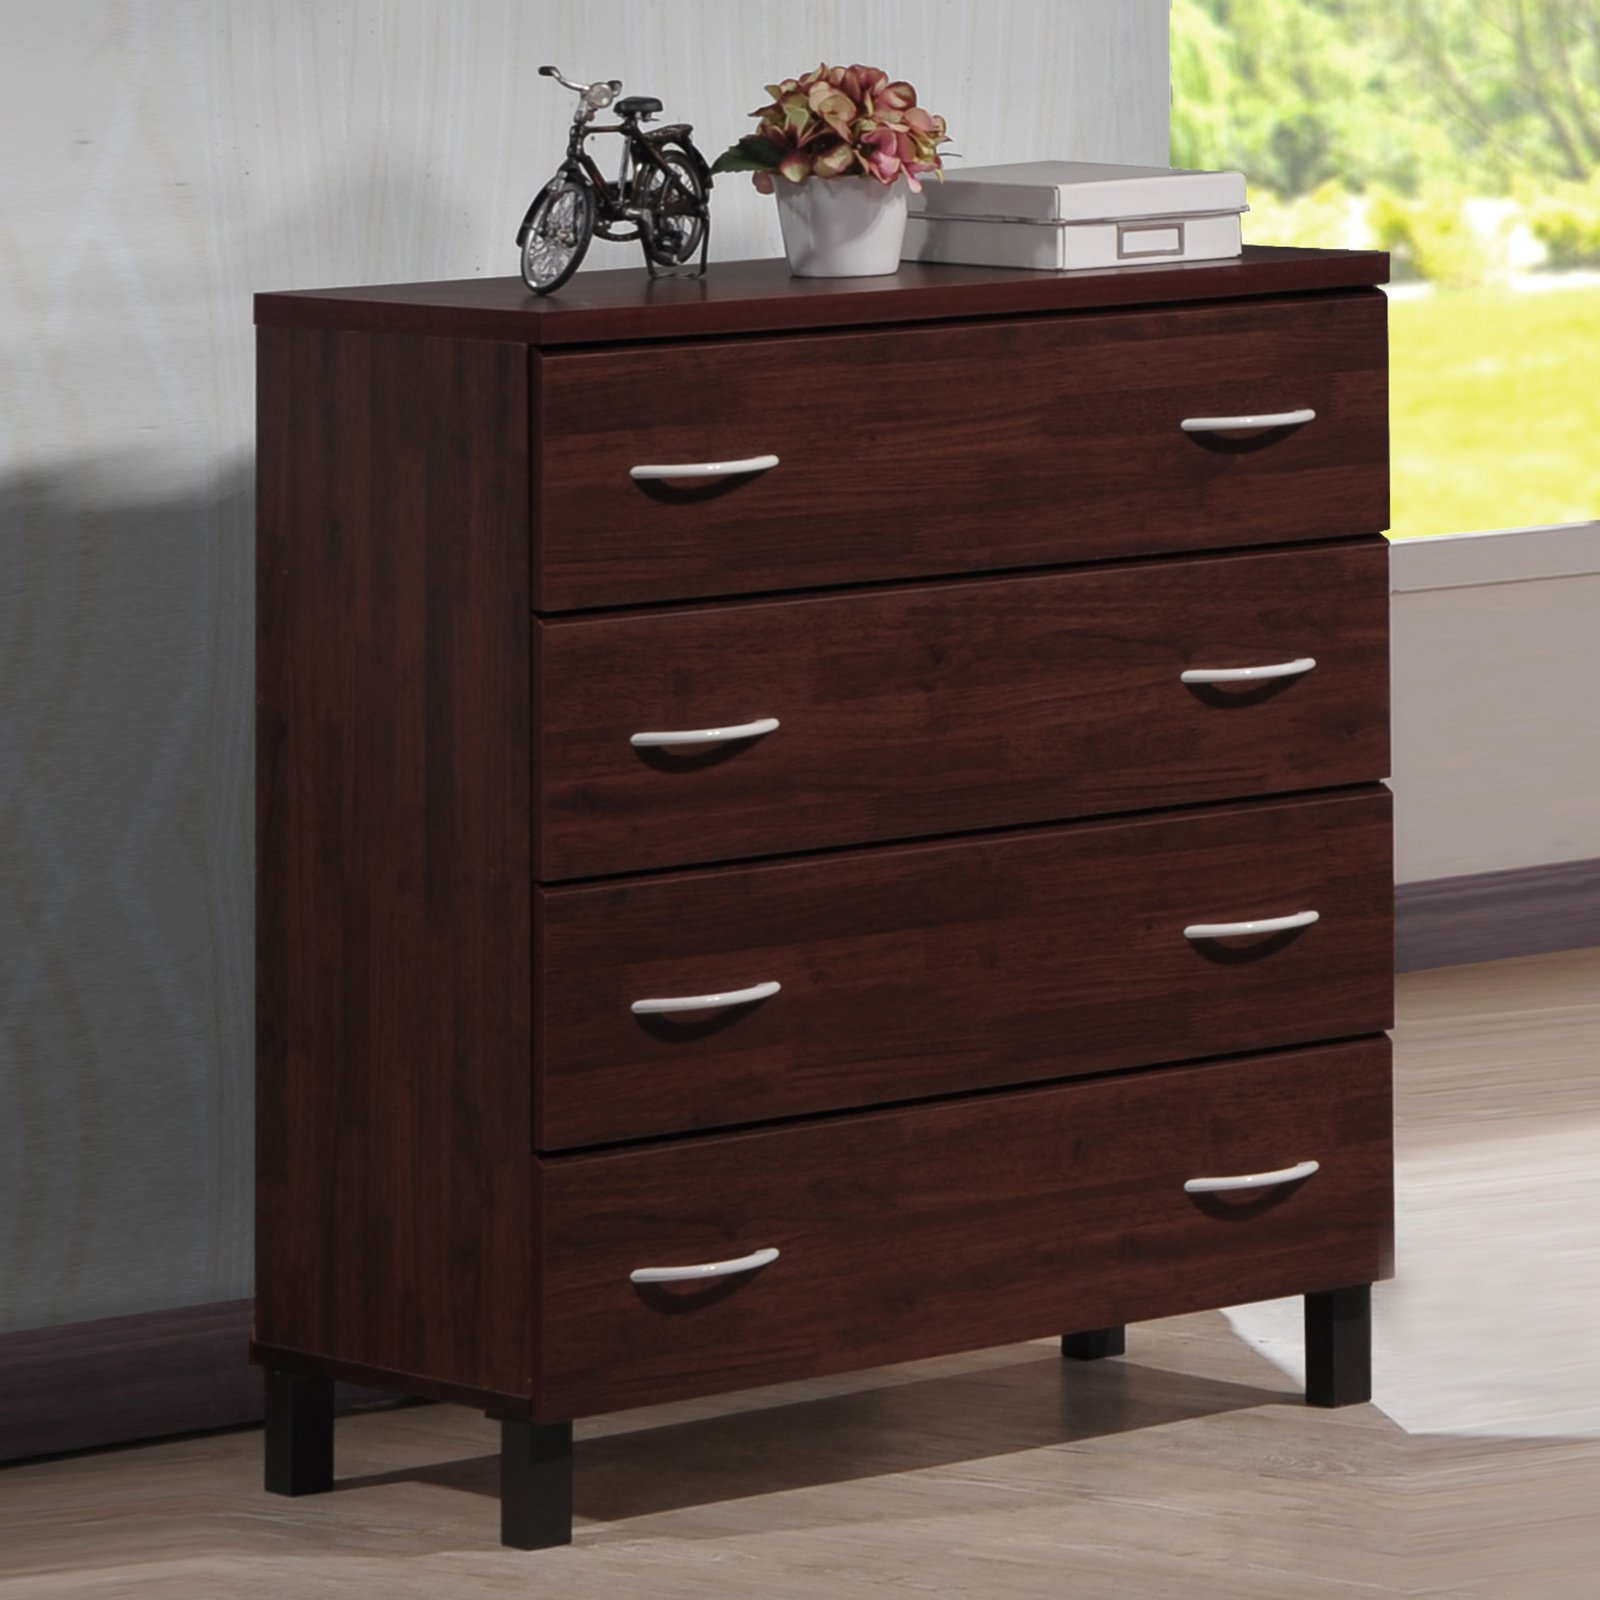 Baxton Studio Maison Modern and Contemporary Oak Brown Finish Wood 4-Drawer Storage Chest